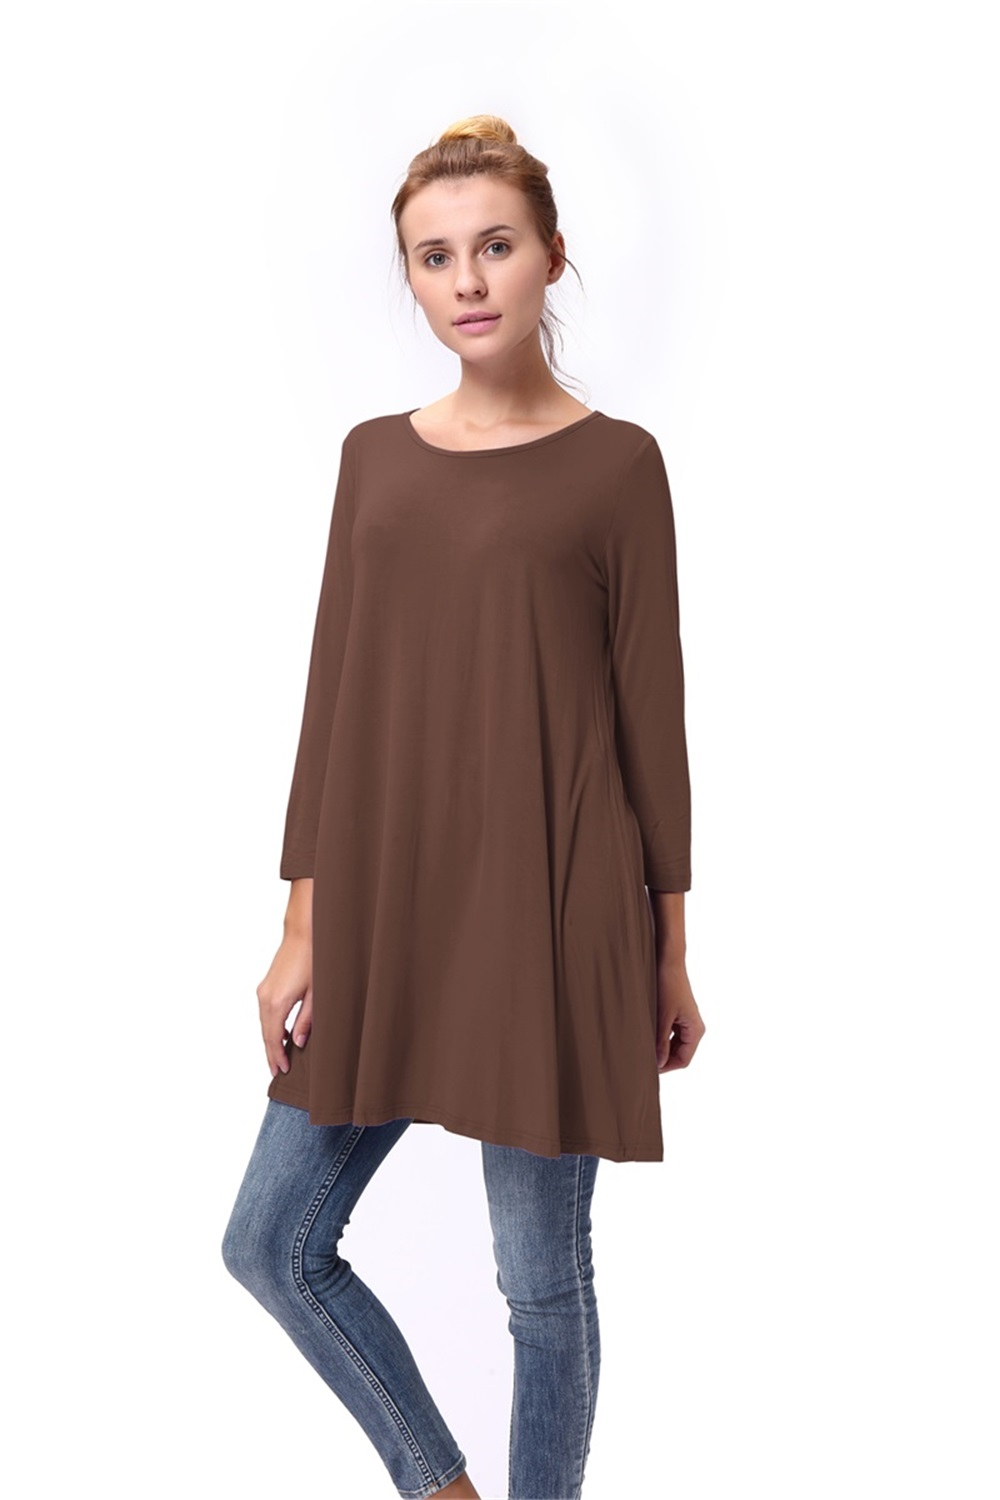 Women-039-s-Long-Tunic-Top-3-4-Sleeve-Dolman-Boat-Neck-USA-Dress-S-M-L-1X-2X-3X-PLUS thumbnail 18